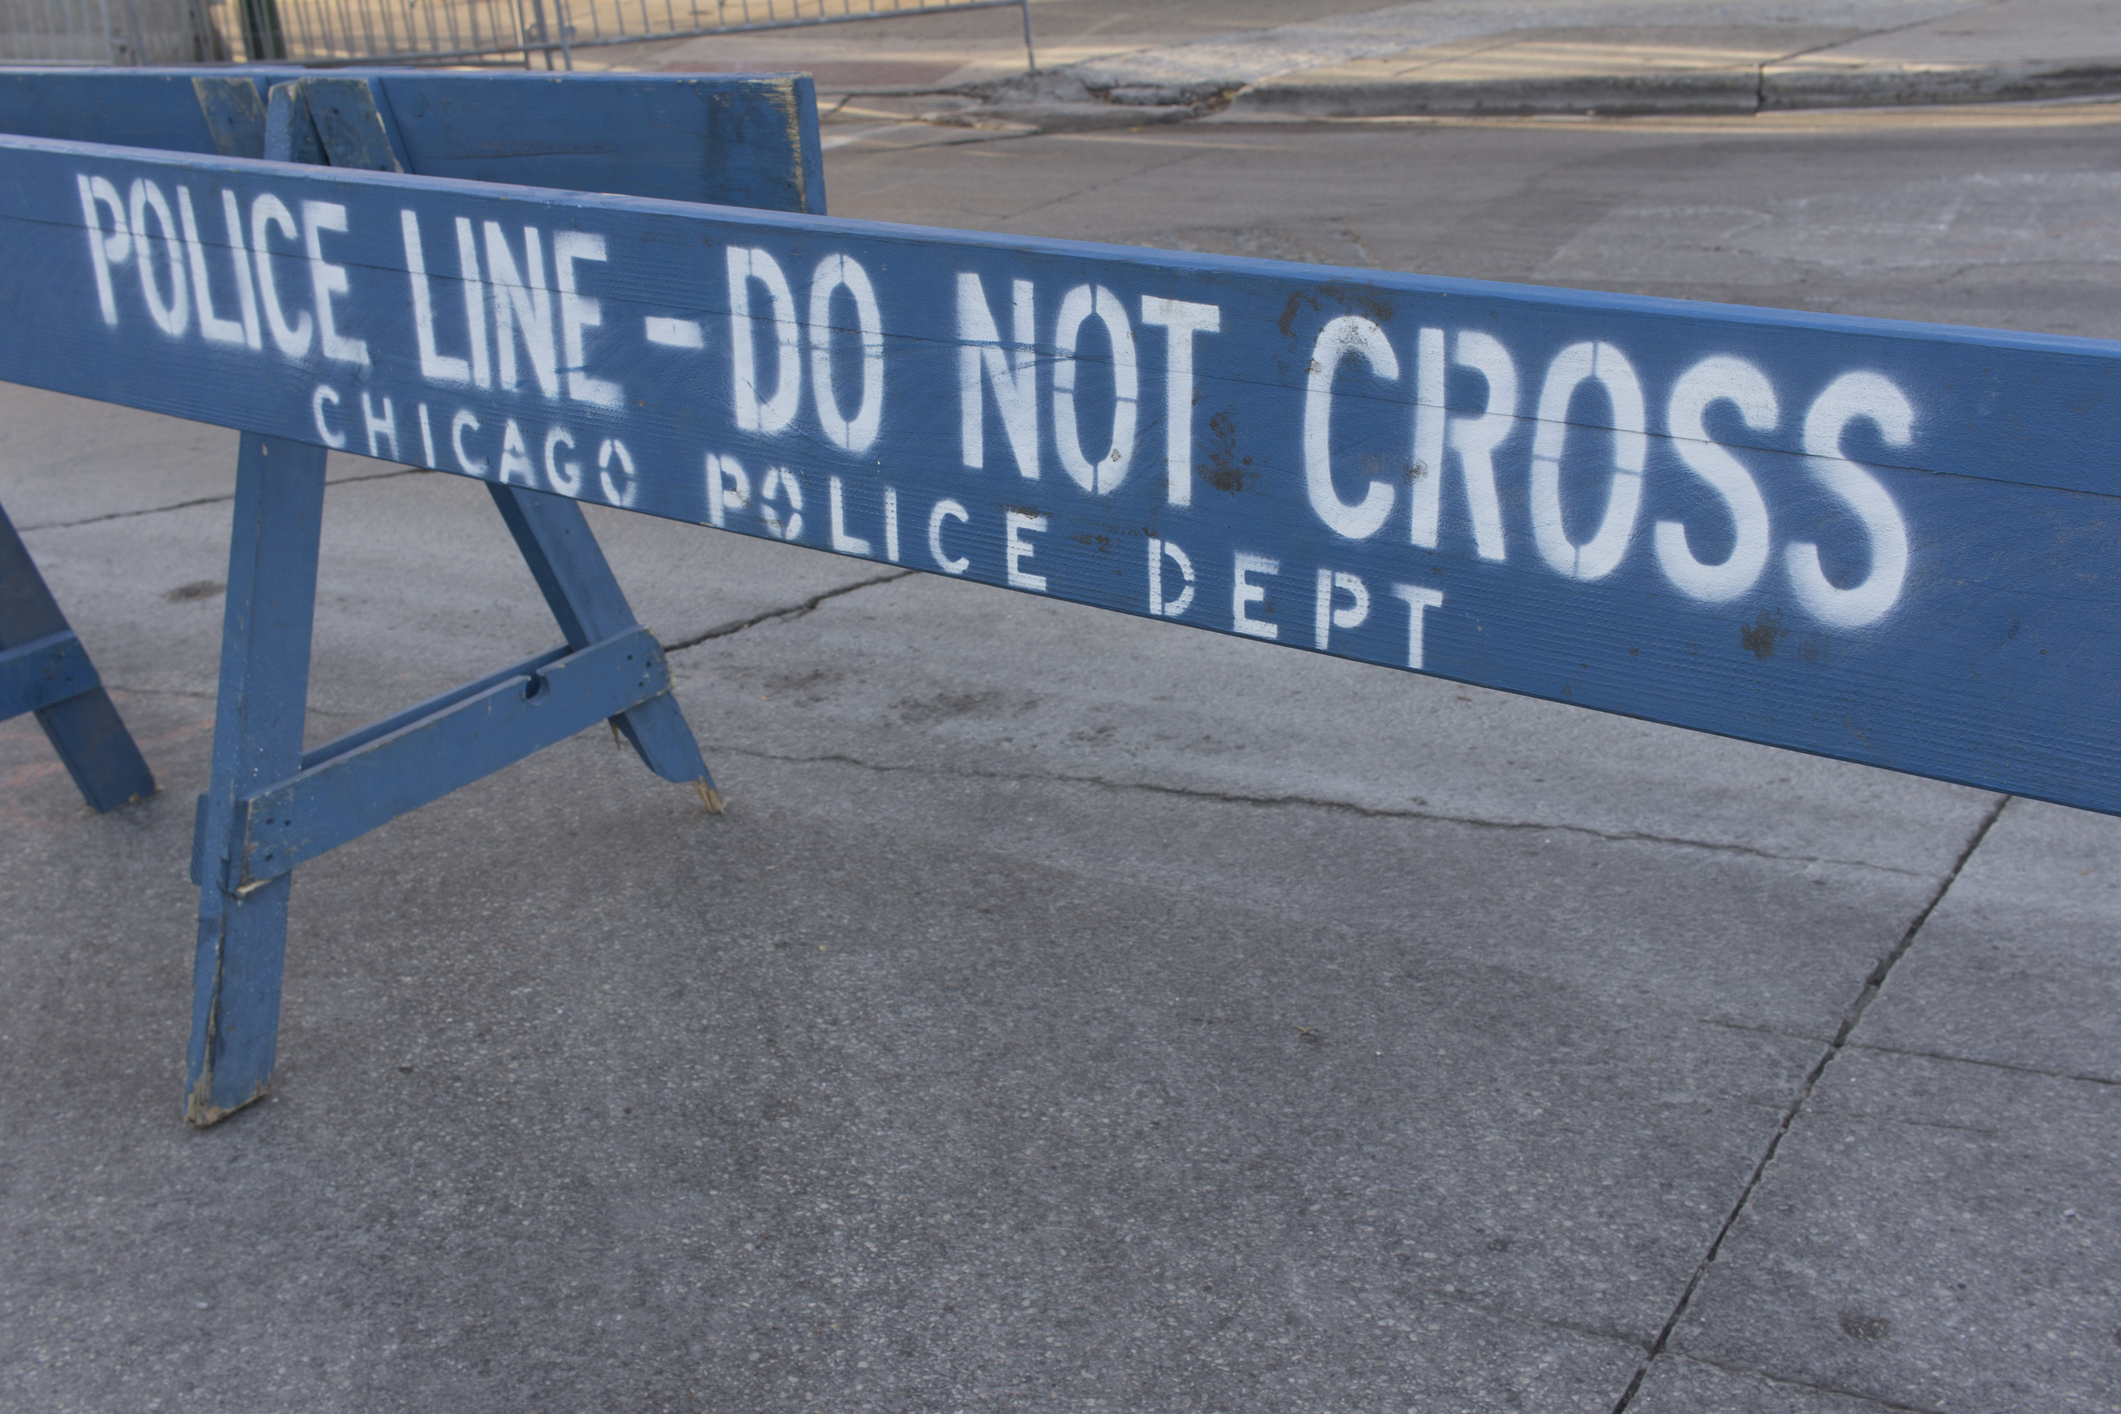 Chicago Policdomestic-relatedo not cross